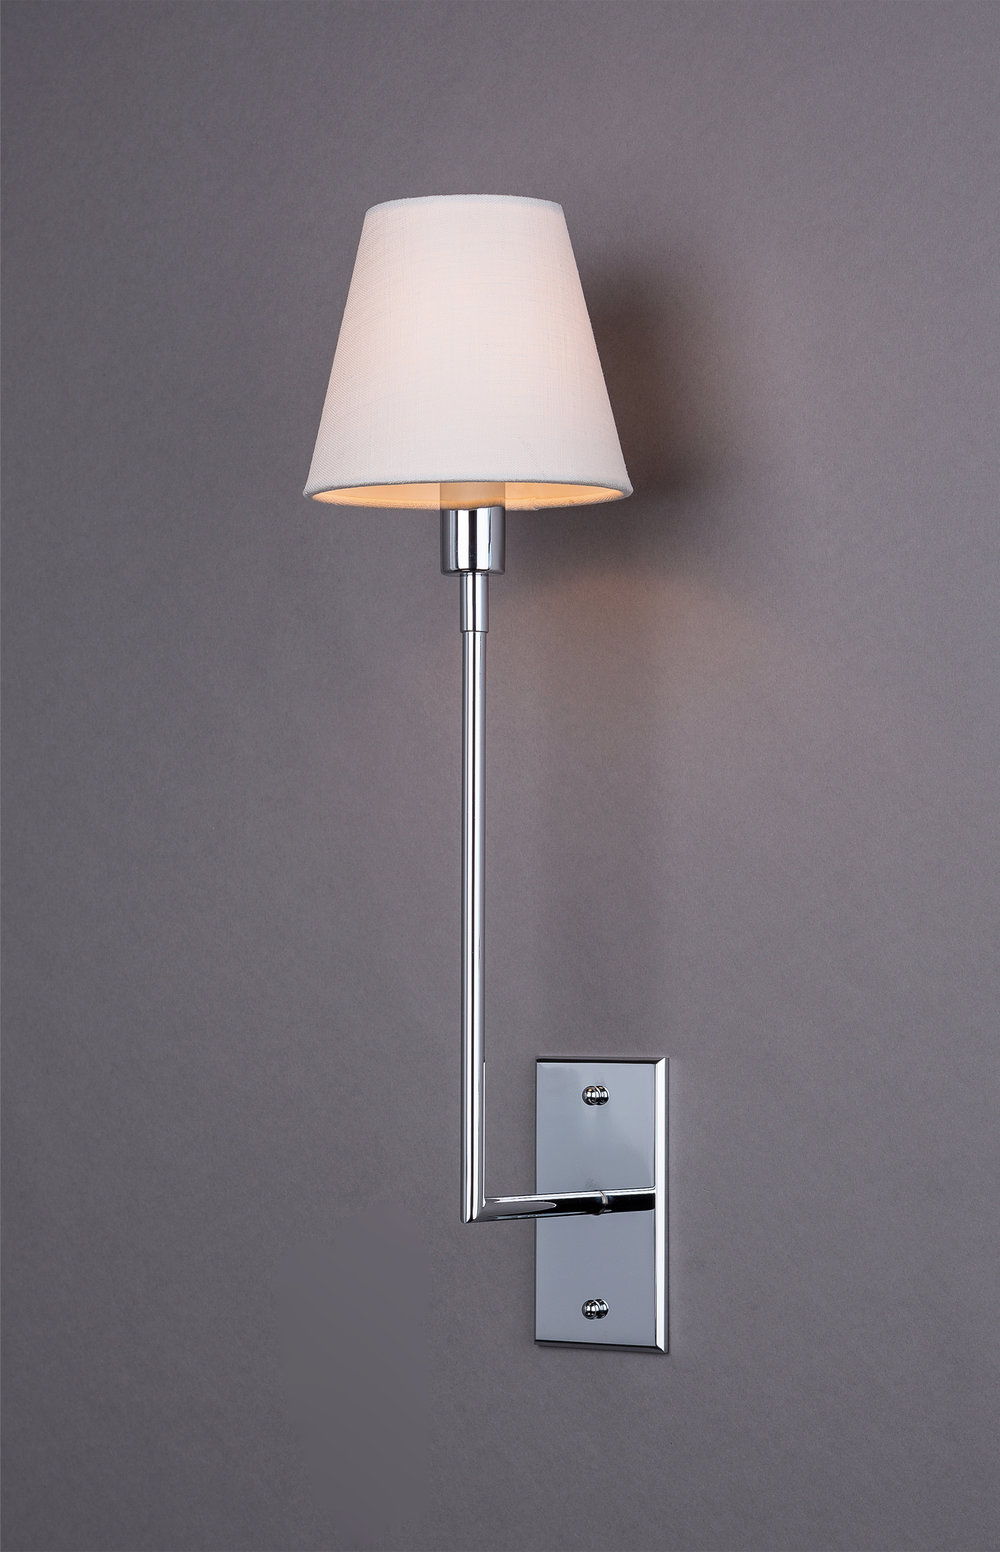 Jasper J Single Arm Sconce  Polished nickel / white linen shade.